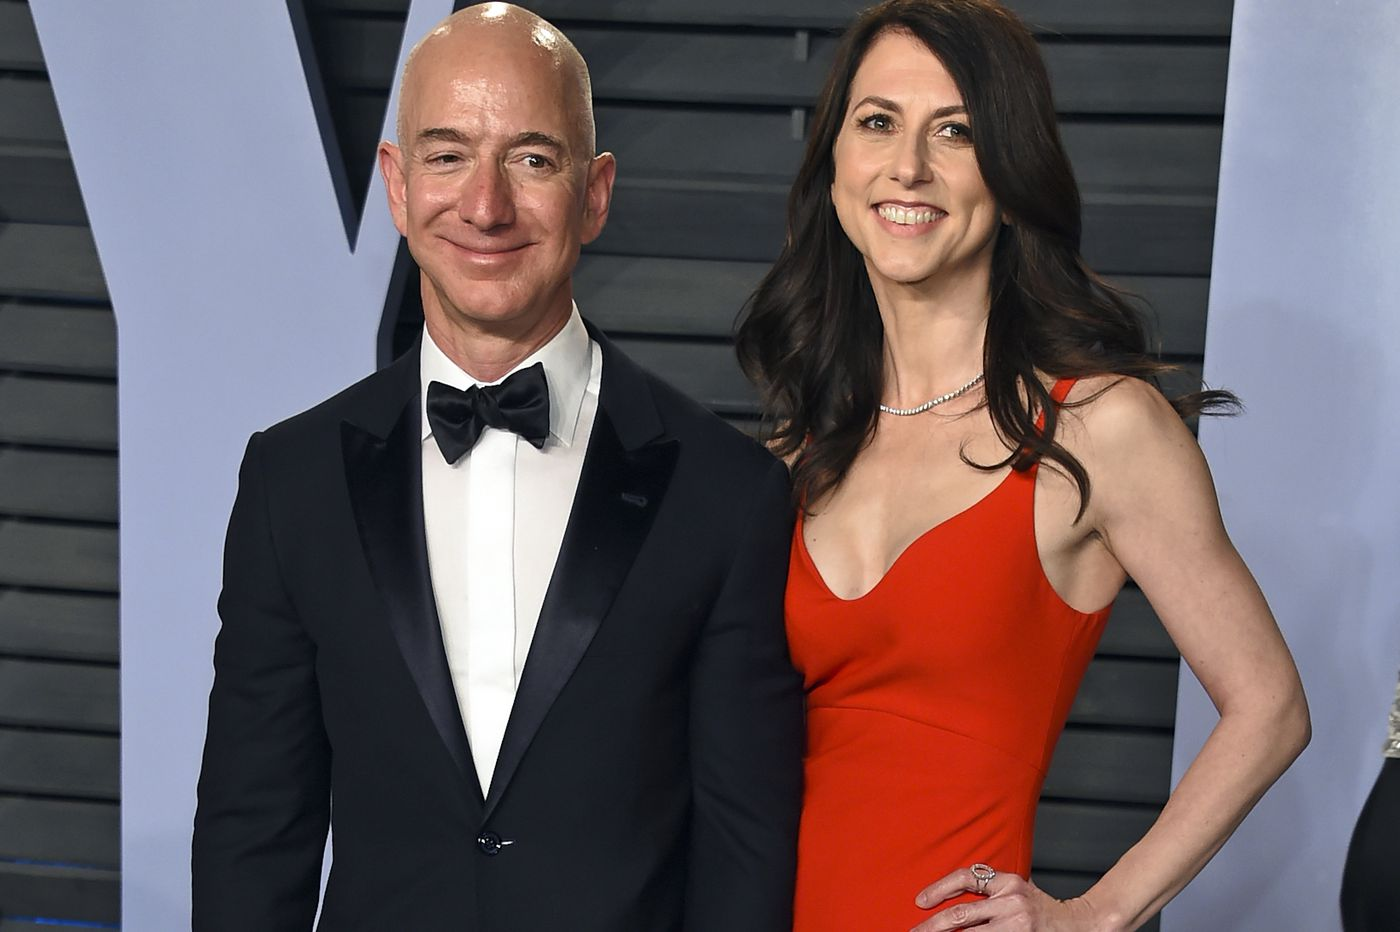 Amazon boss Jeff Bezos and wife MacKenzie announce divorce